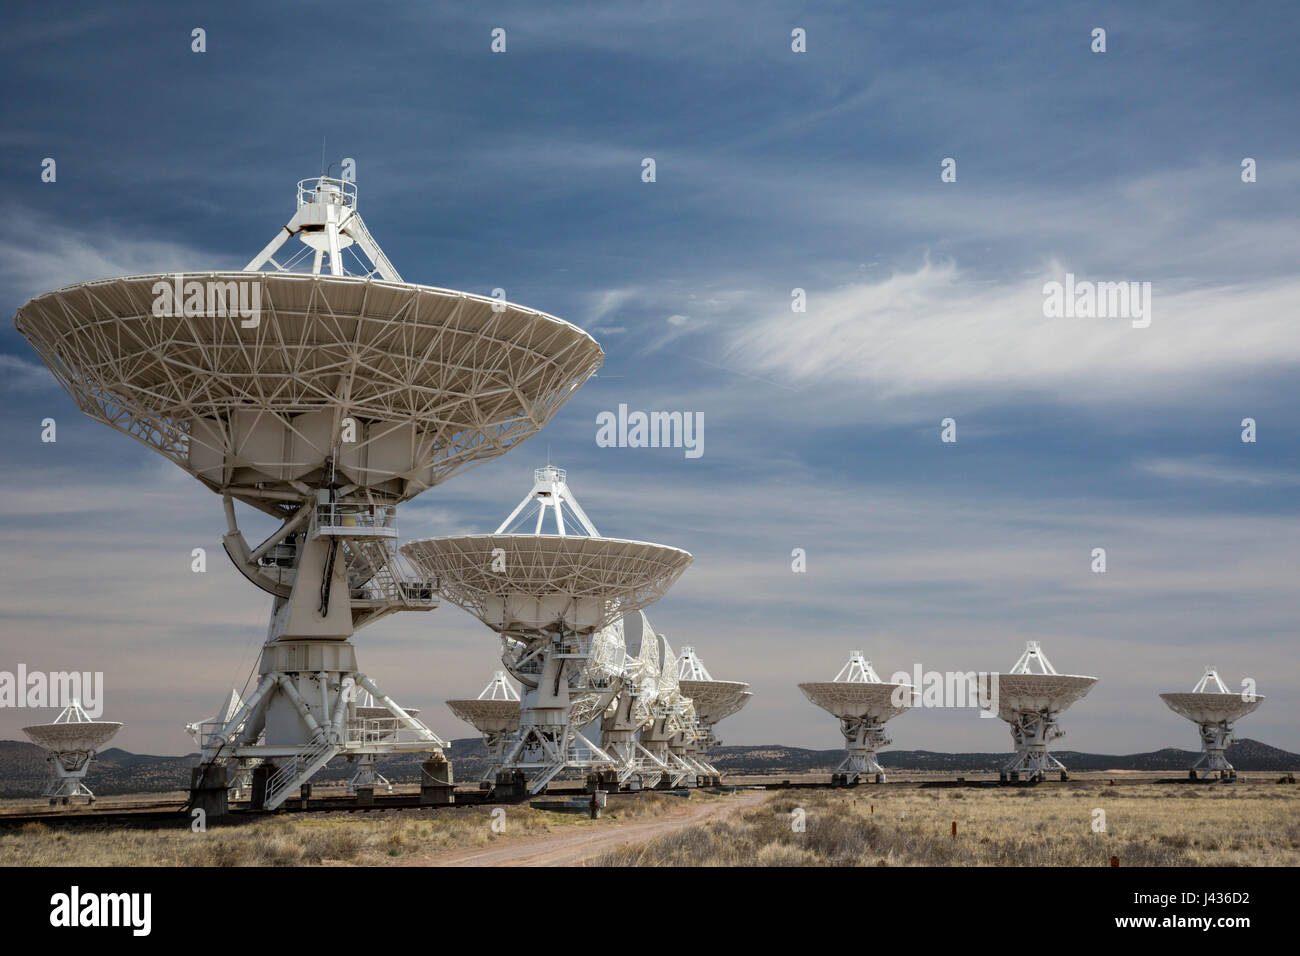 Datil, New Mexico - The Very Large Array radio telescope consists of 27 large dish antennas on the Plains of San Stock Photo